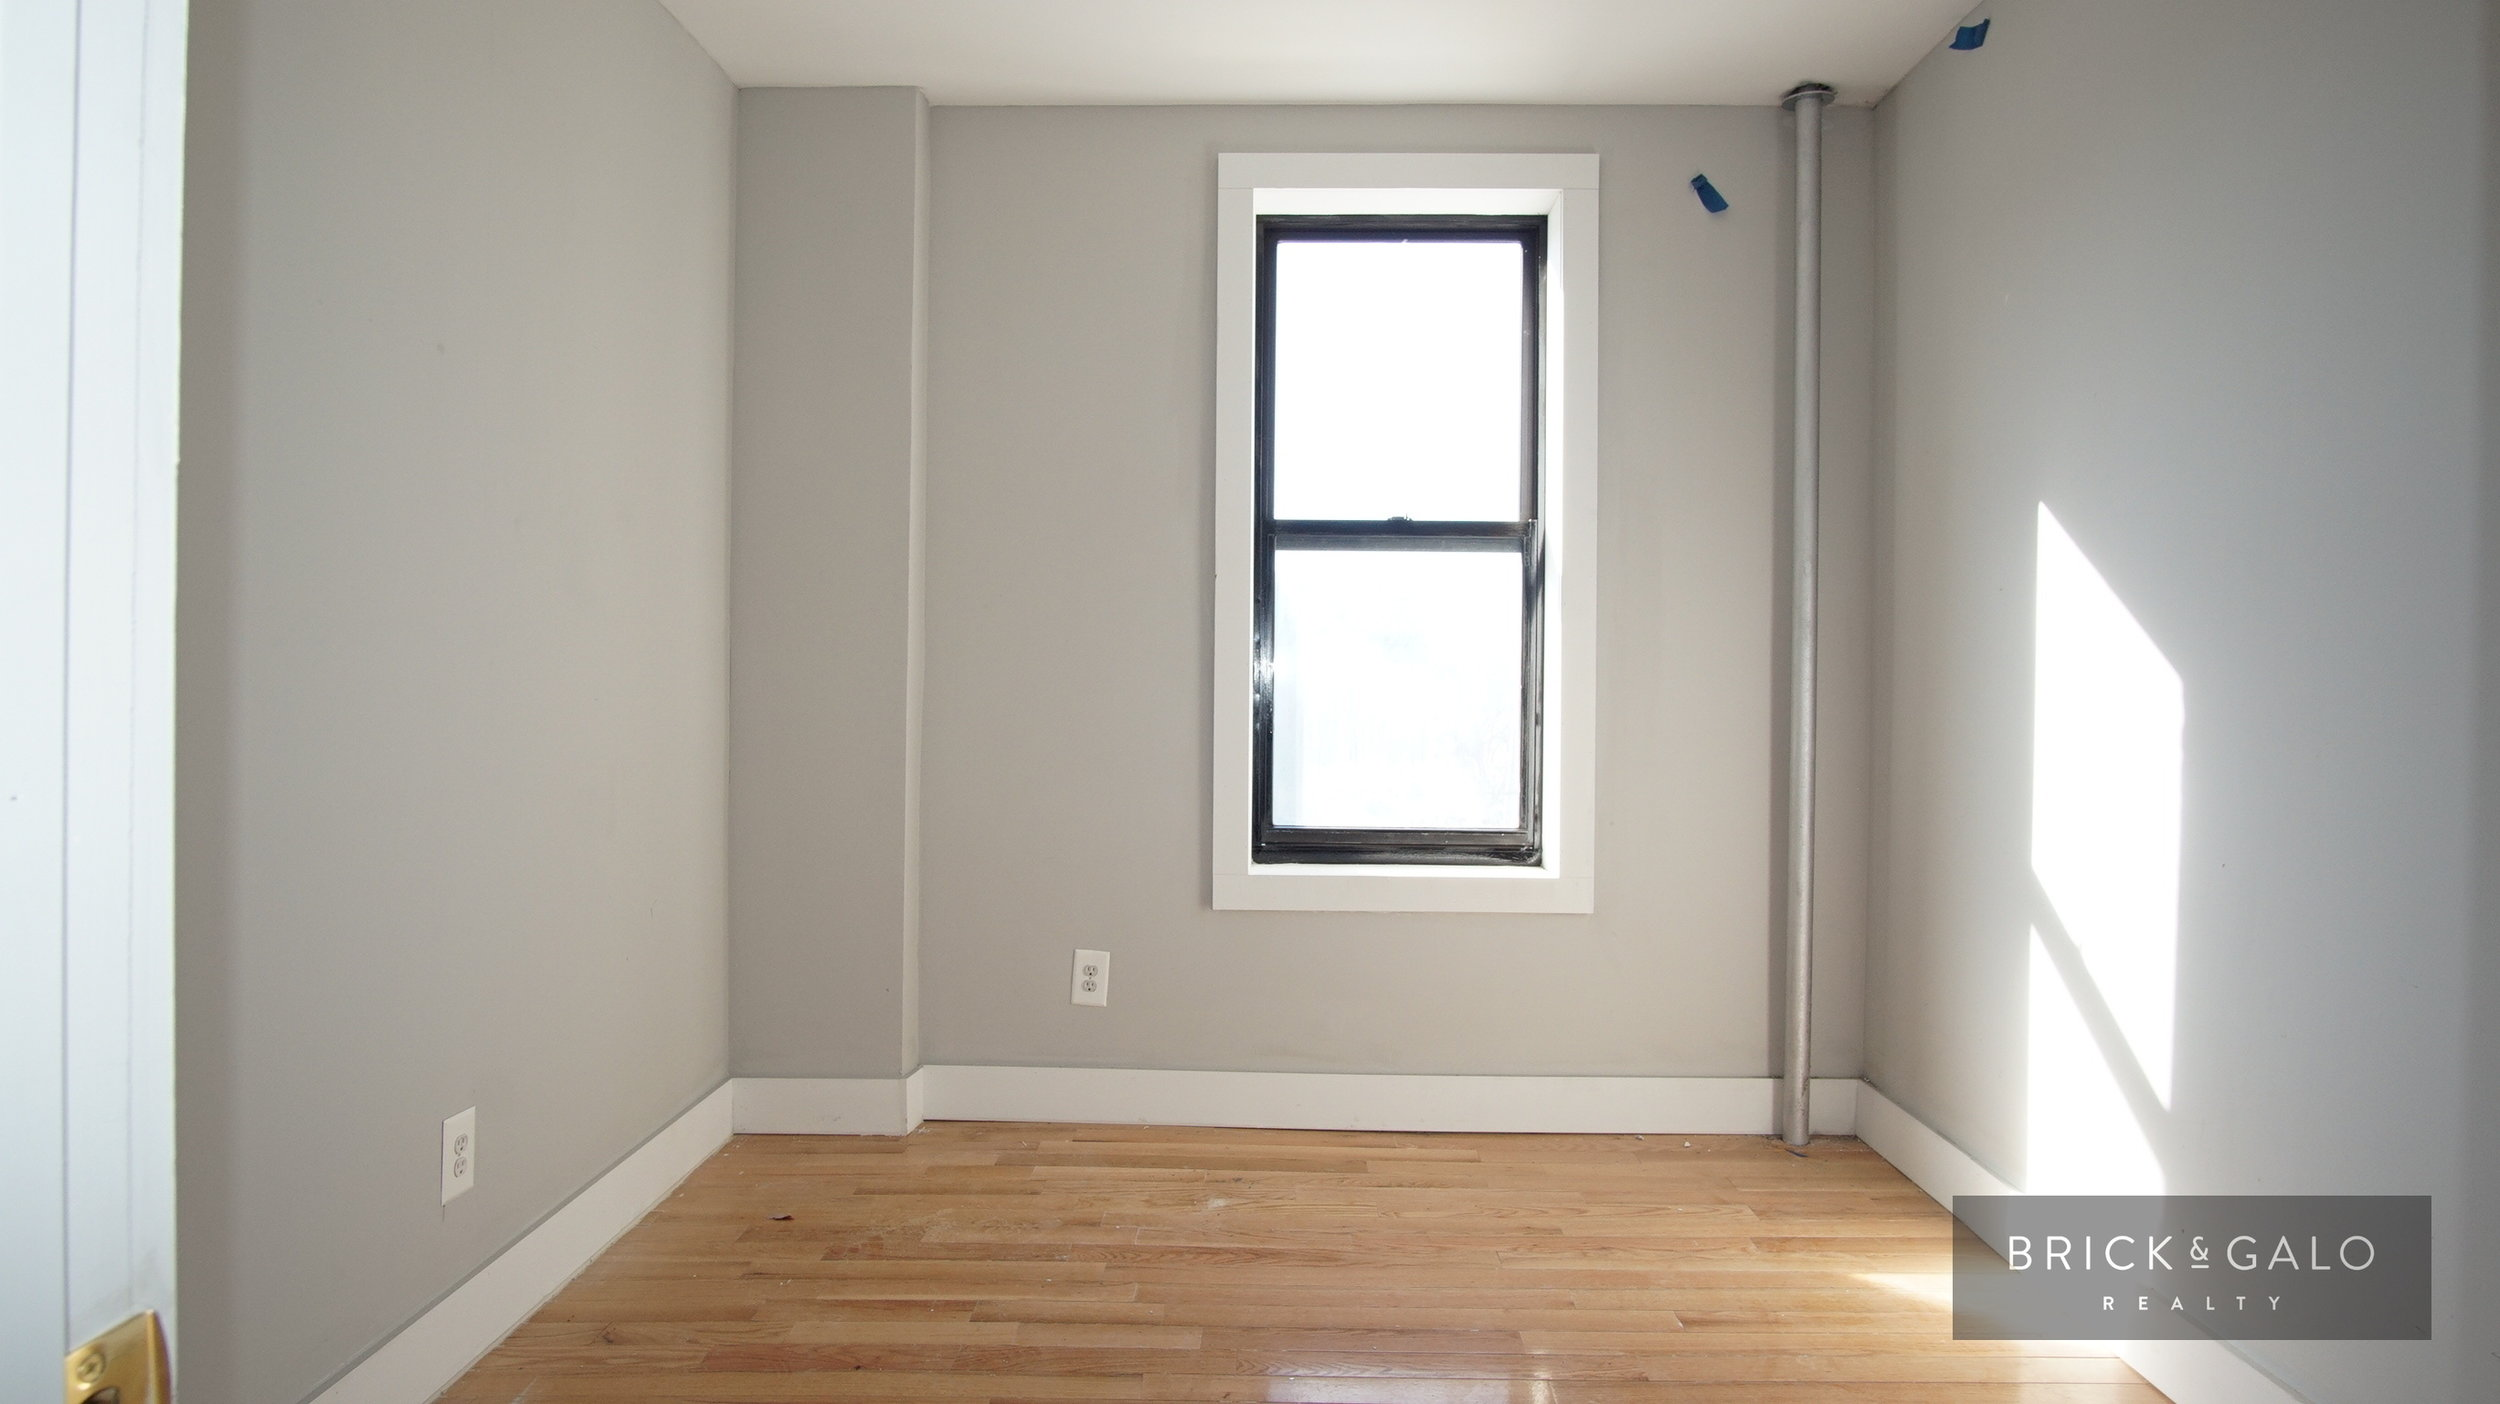 485 East 180th St 2 bed - 1 bath  Rent  $ 1,650  -